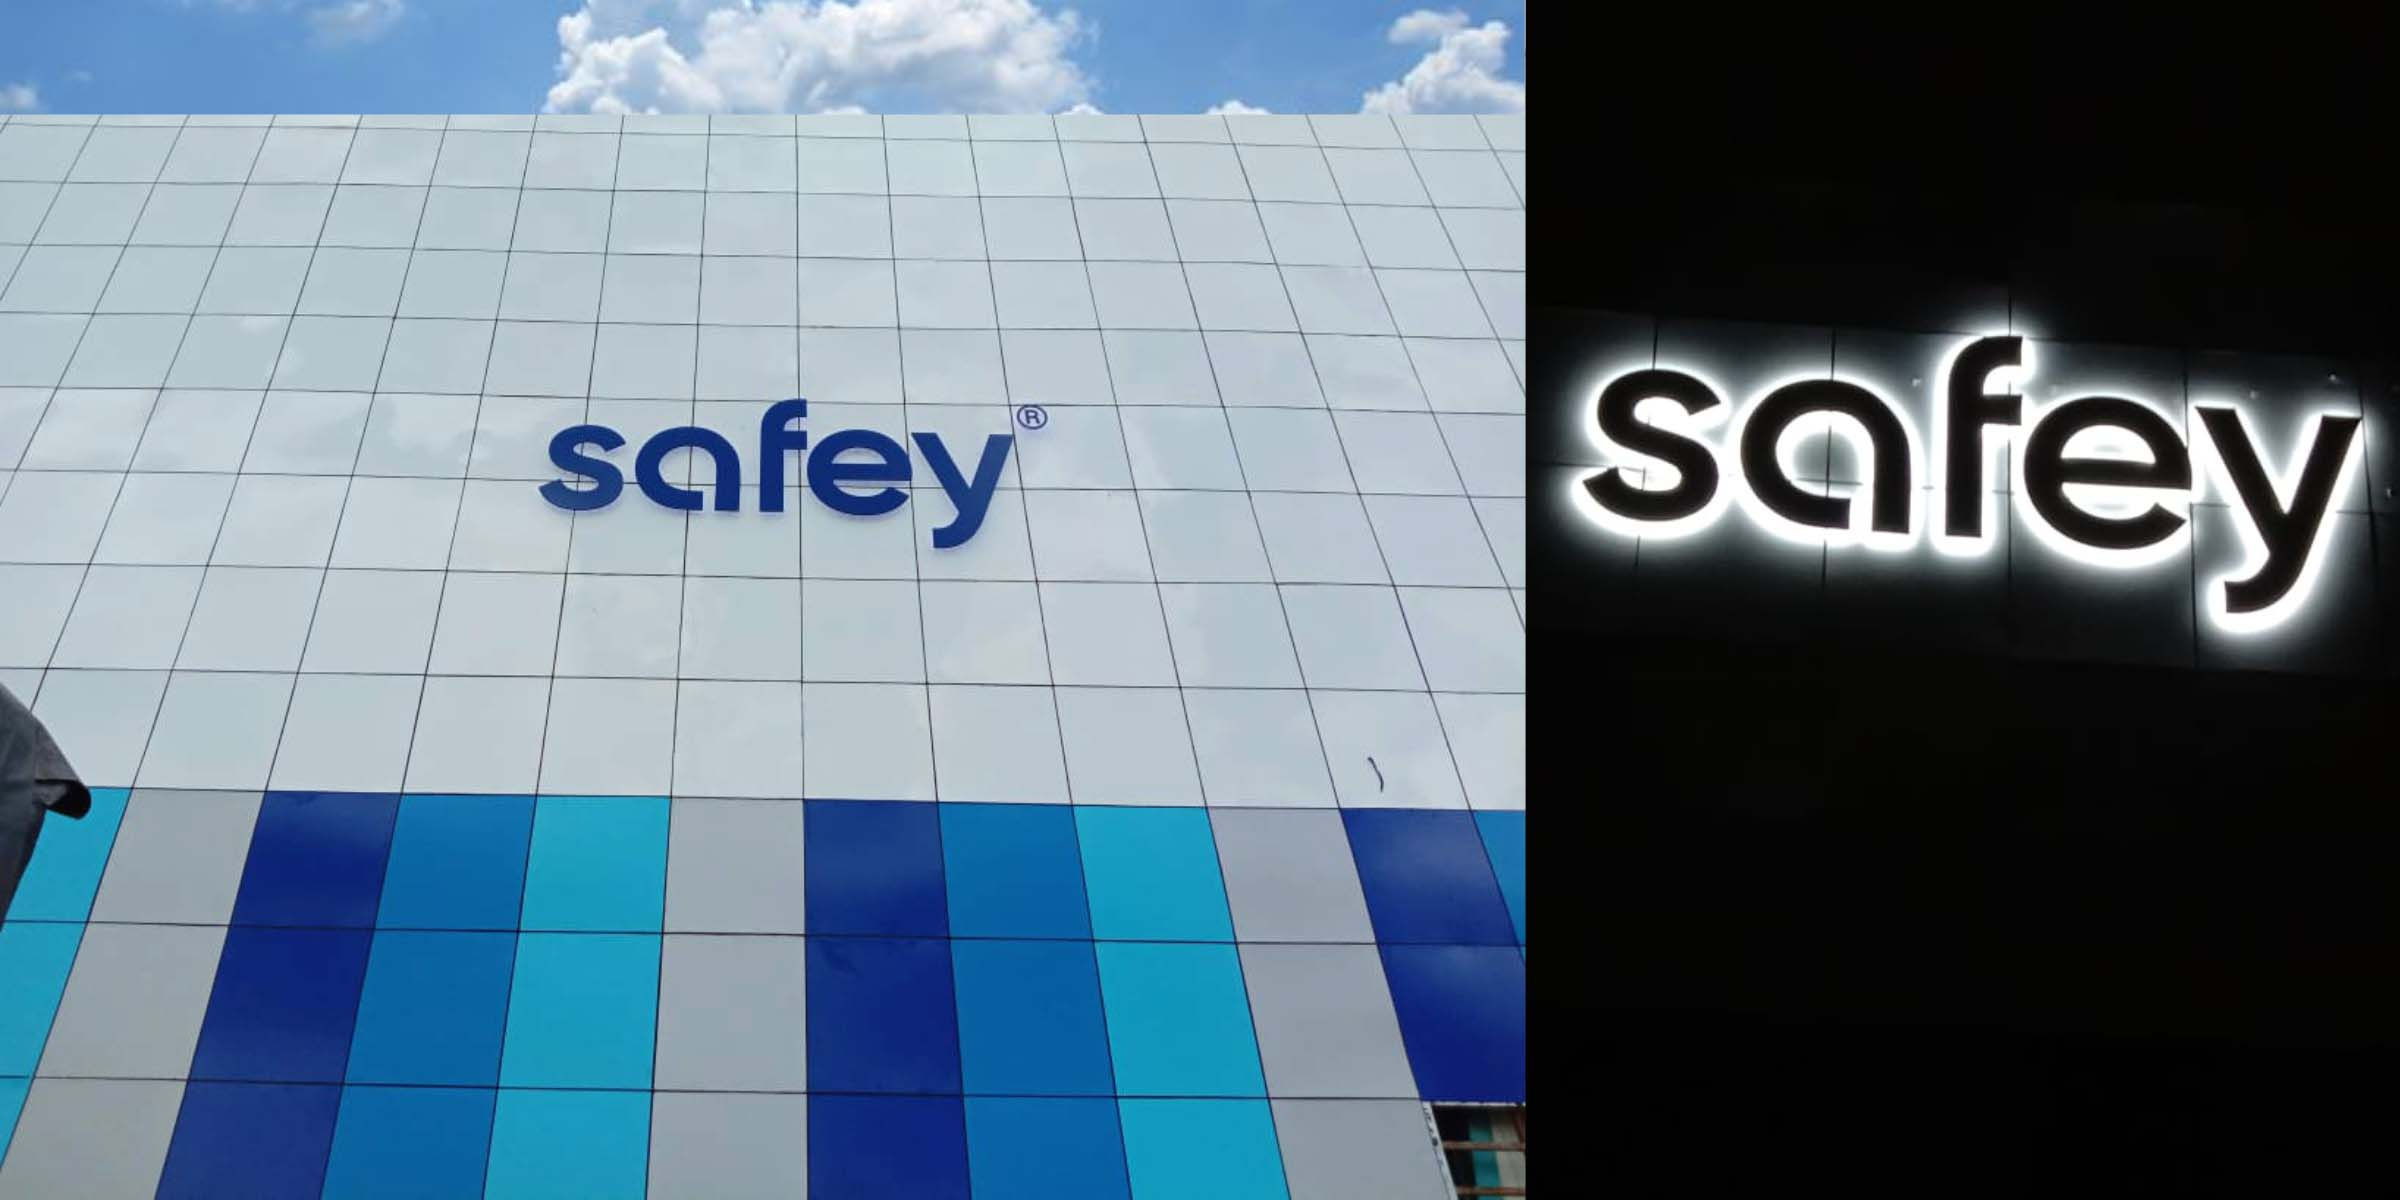 Day and night view of a metal letter sky sign for the Safey company fixed on the side of a very tall building